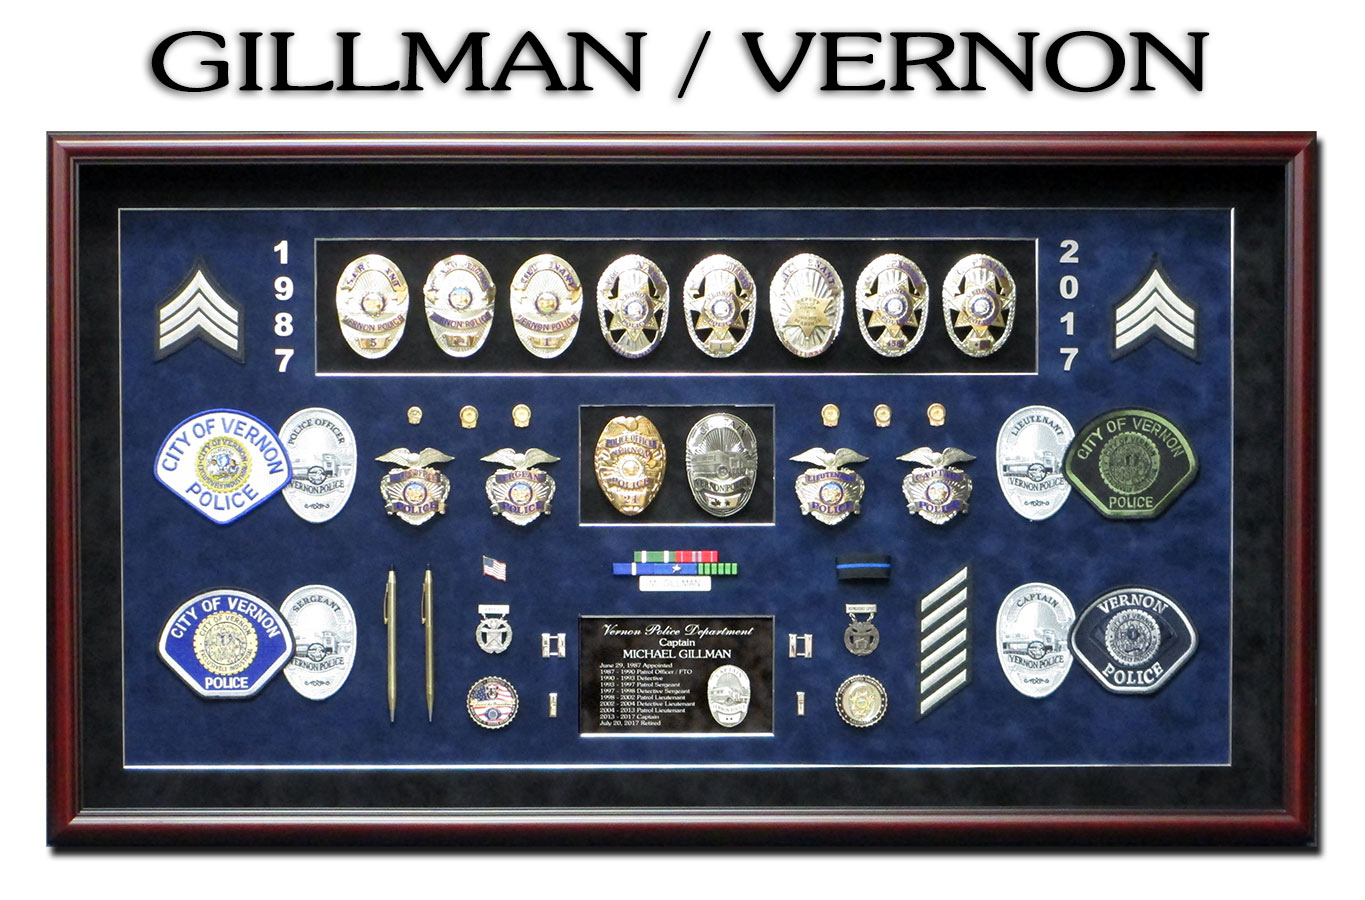 Police Shadowbox for Gillman - Vernon PD from Badge Frame